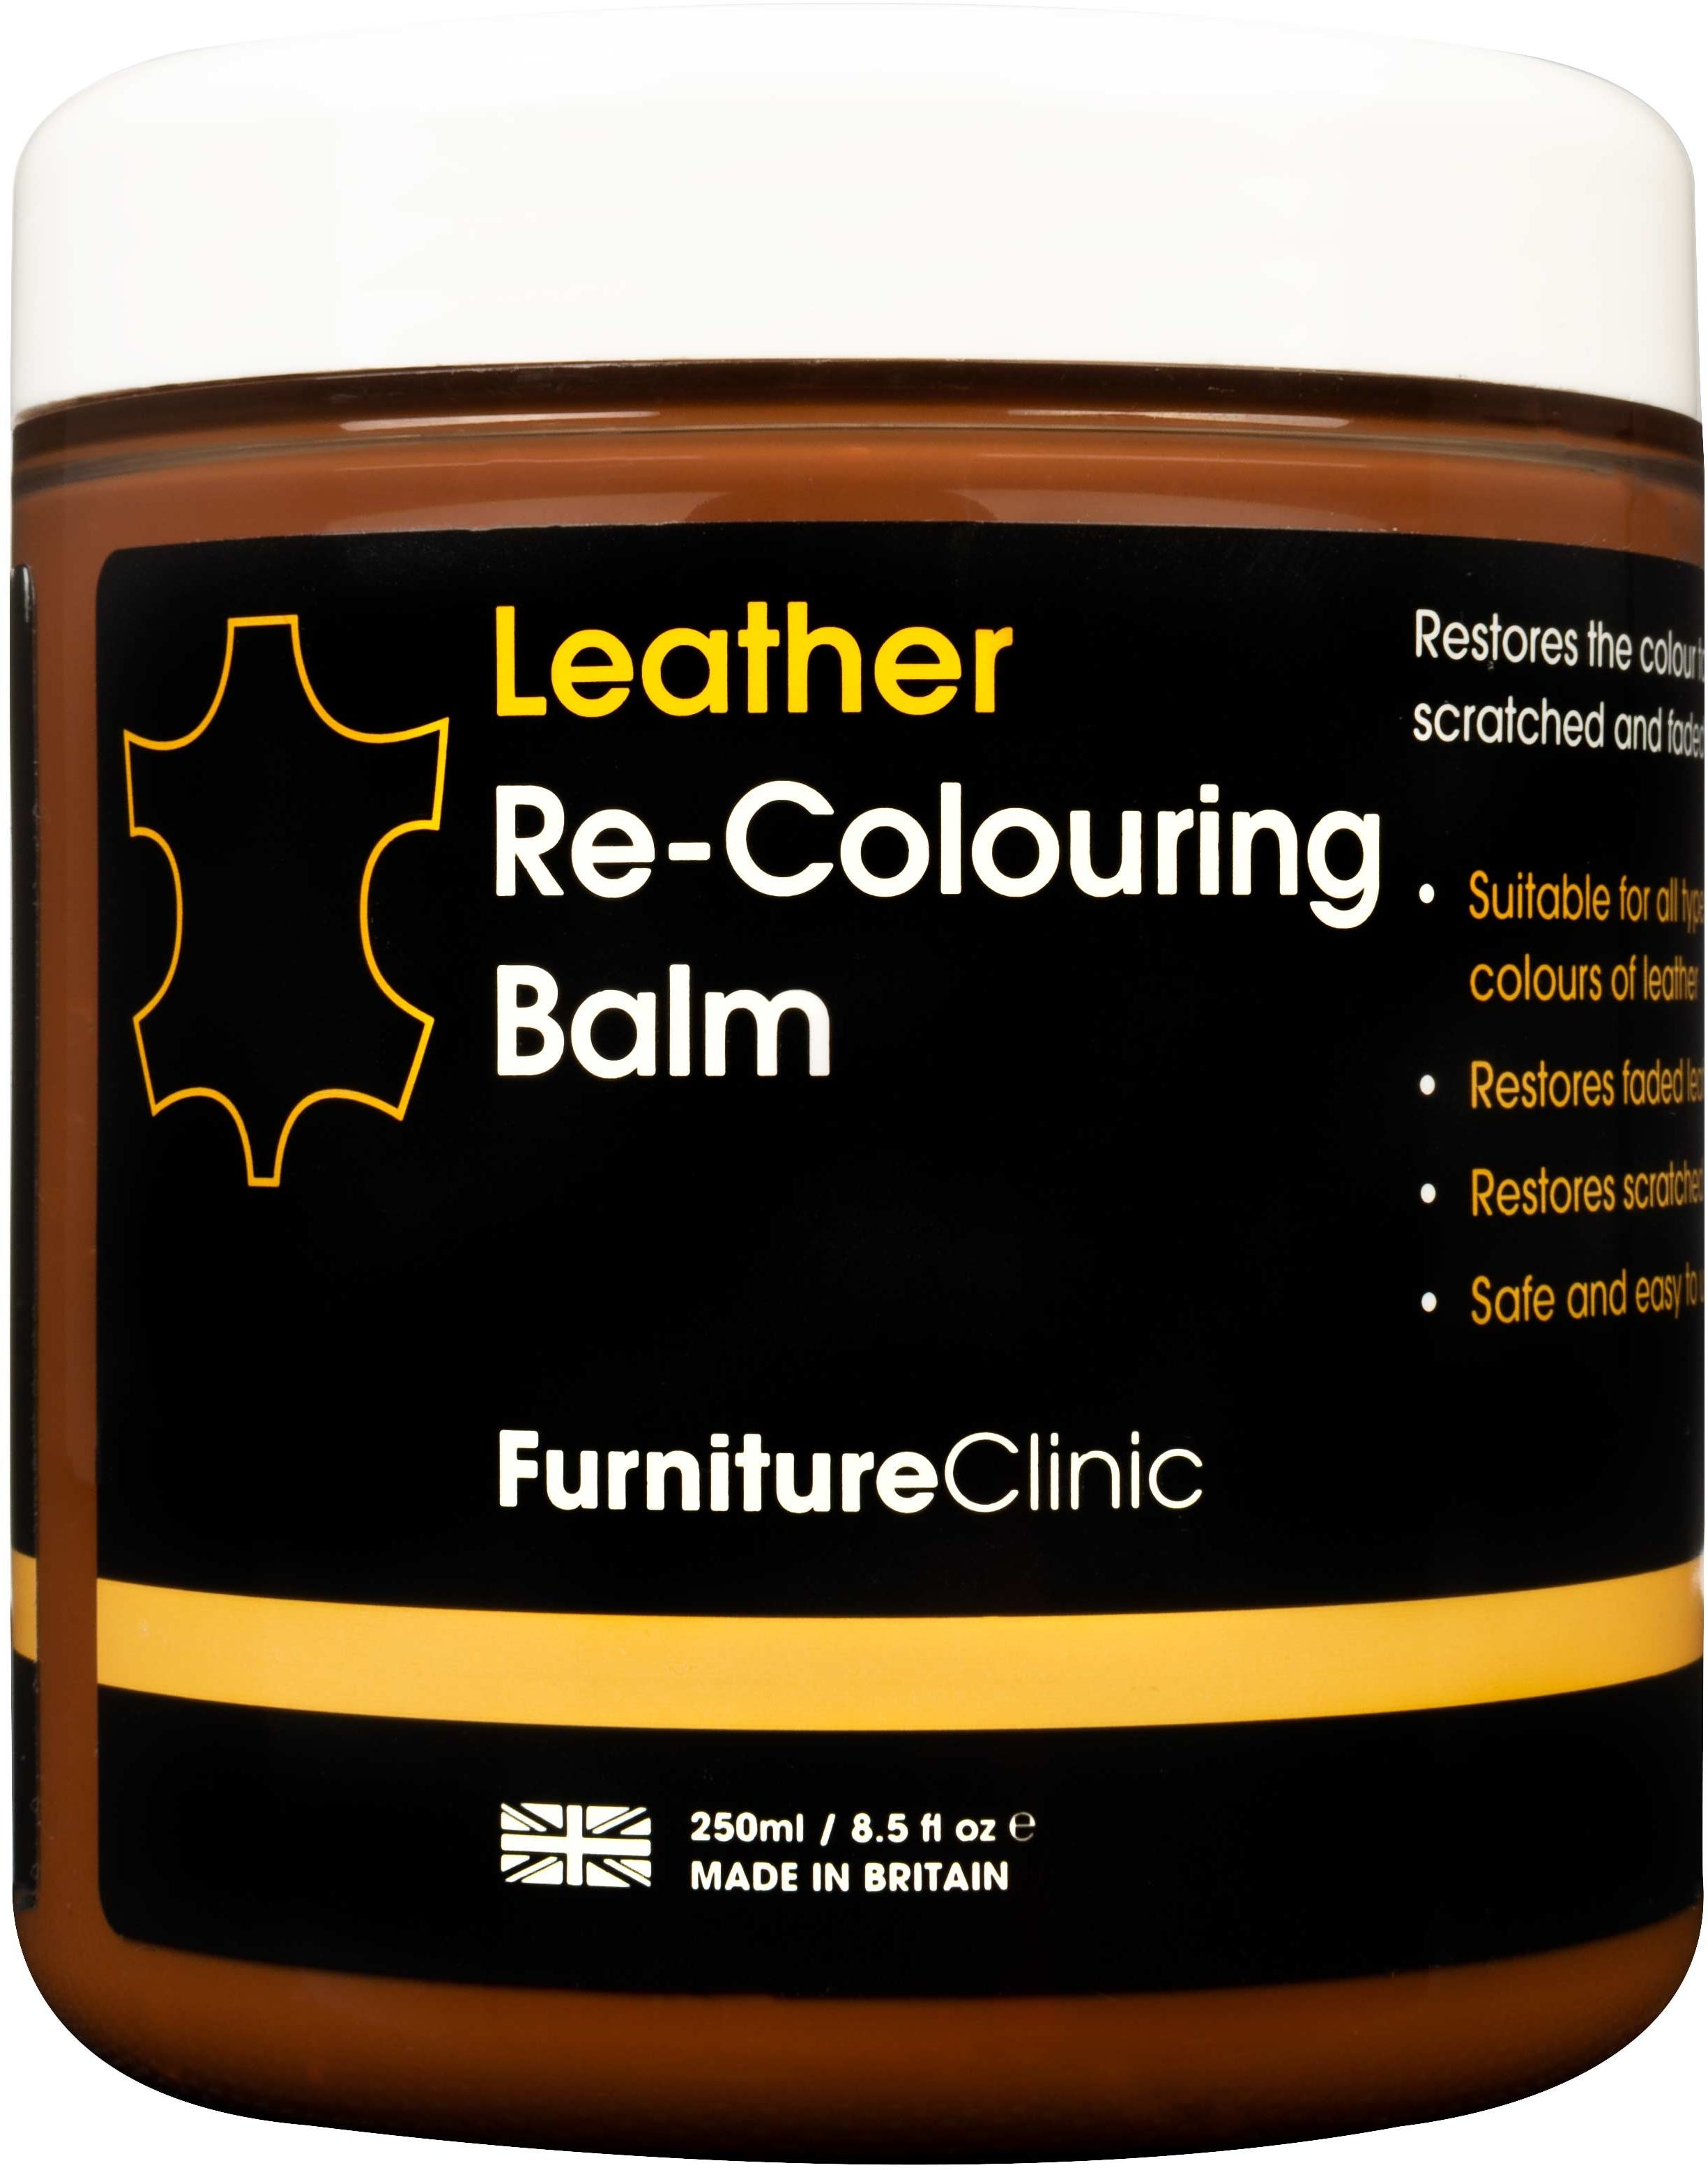 Furniture Clinic Leather Re-Colouring Balm balsam koloryzujący MED BROWN 250ml FUR000011